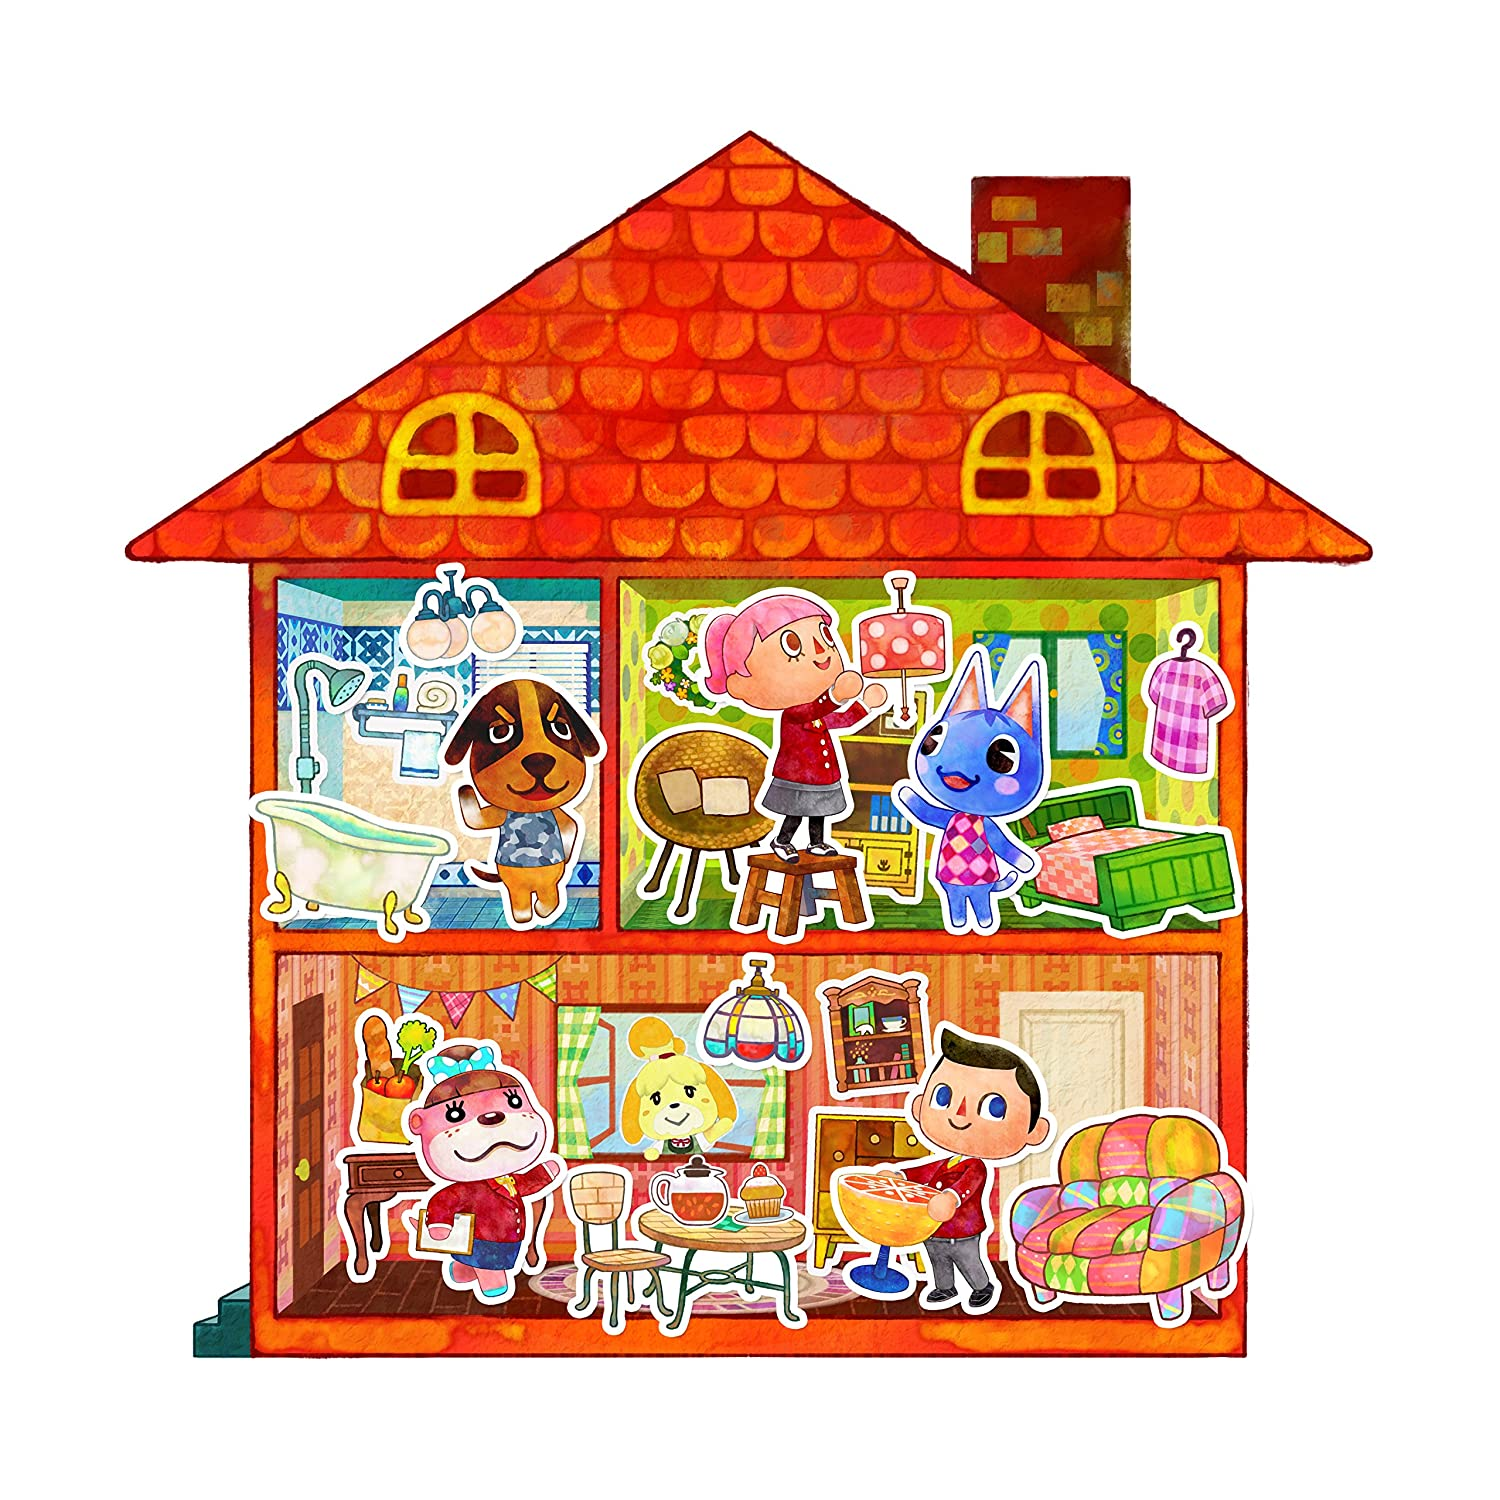 Is the animal crossing happy home designer and nintendo - Happy home designer amiibo figures ...